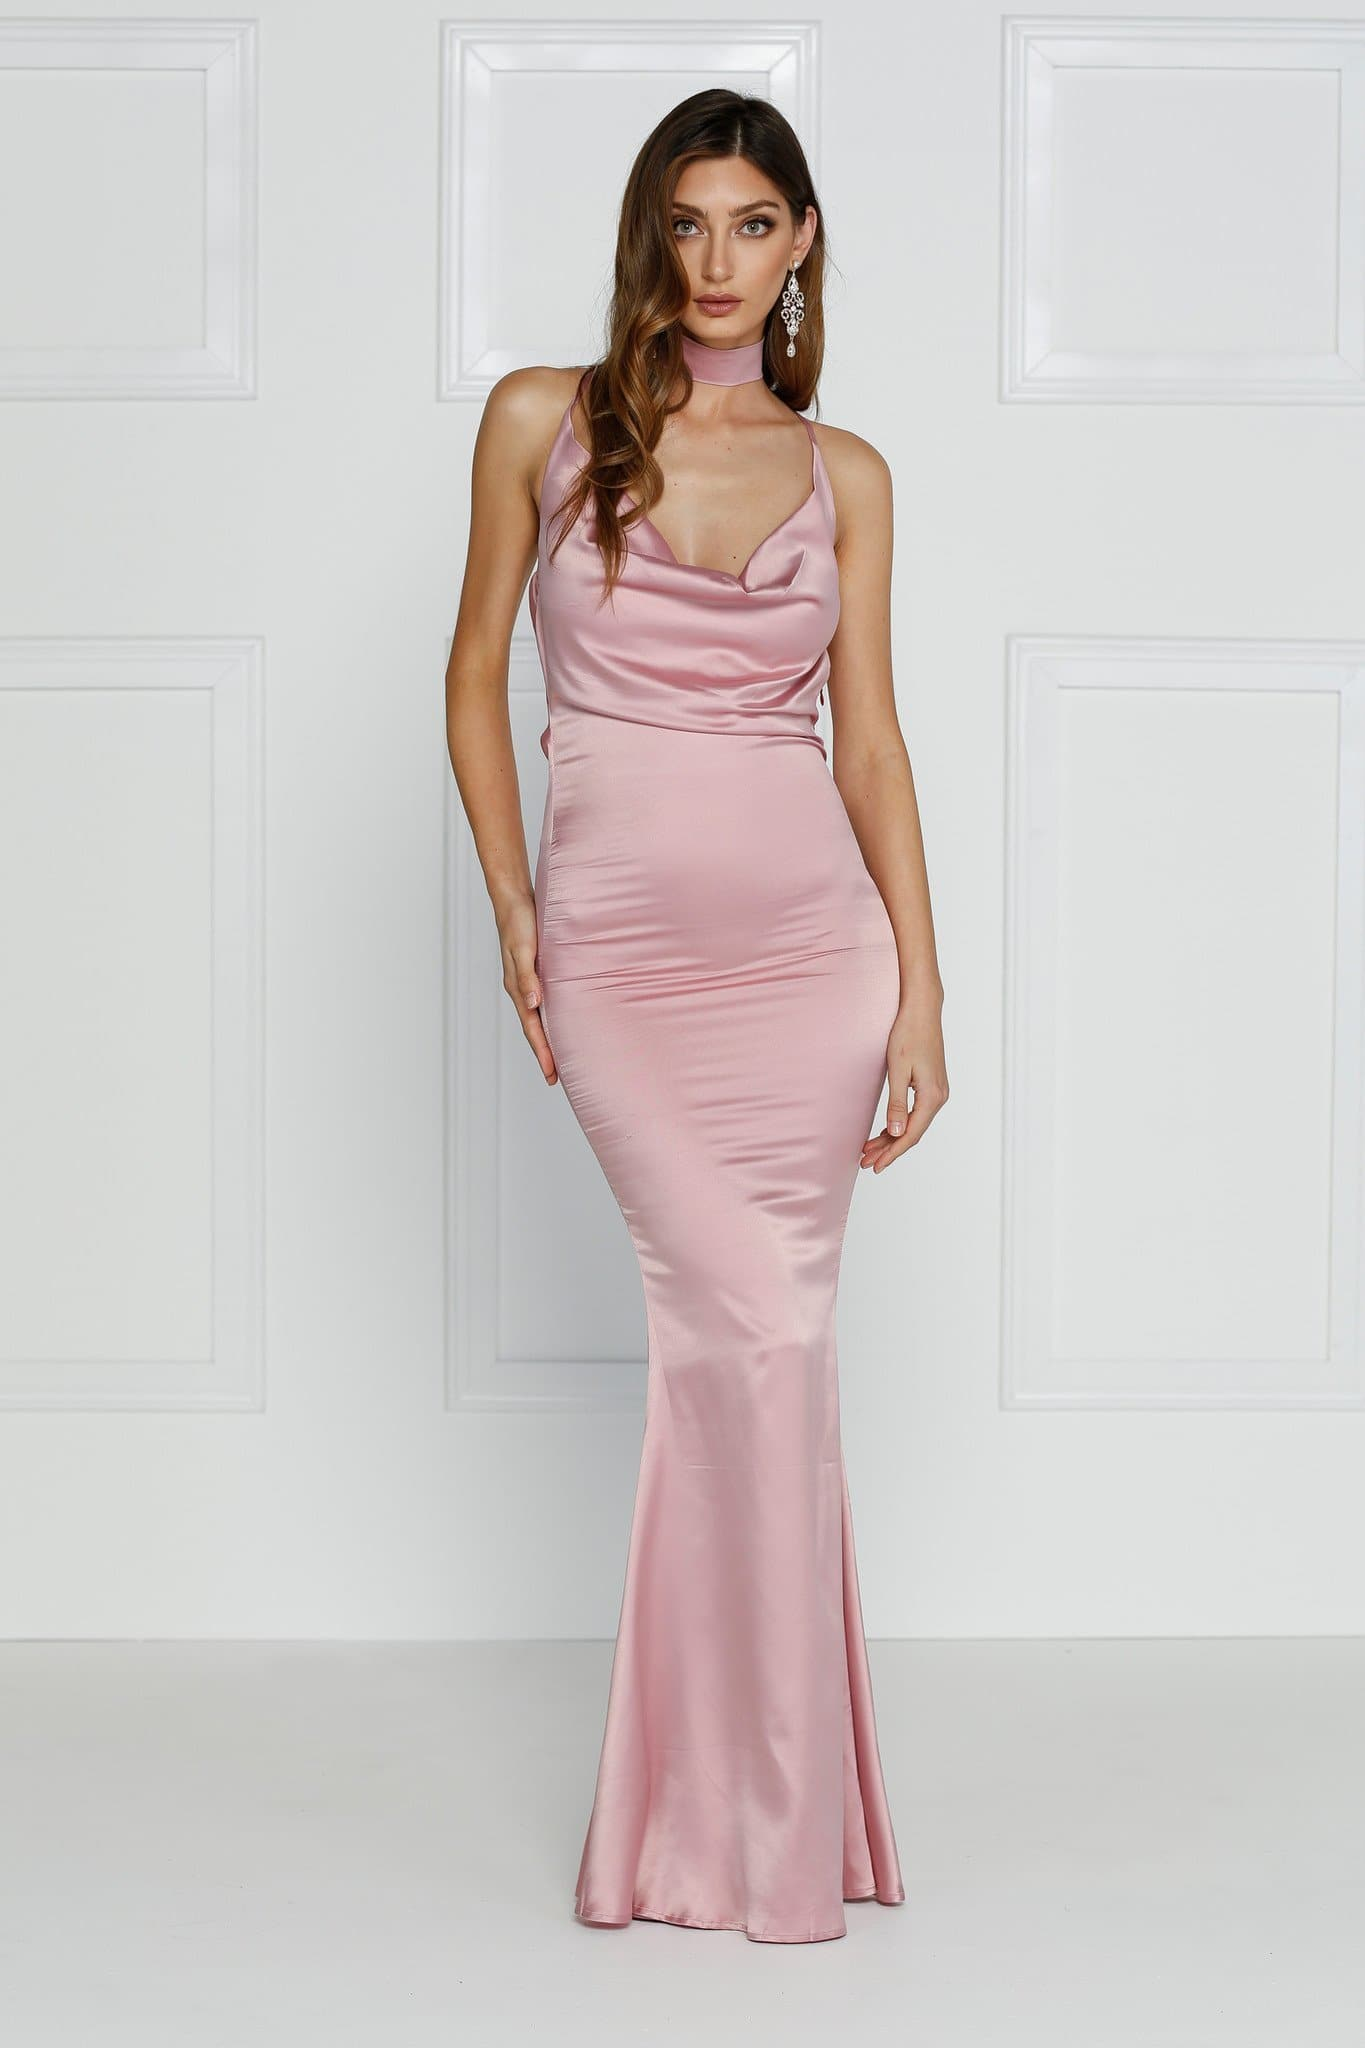 Crisantemi - Dusty Pink Satin Dress with Cowl Neckline & Low Back